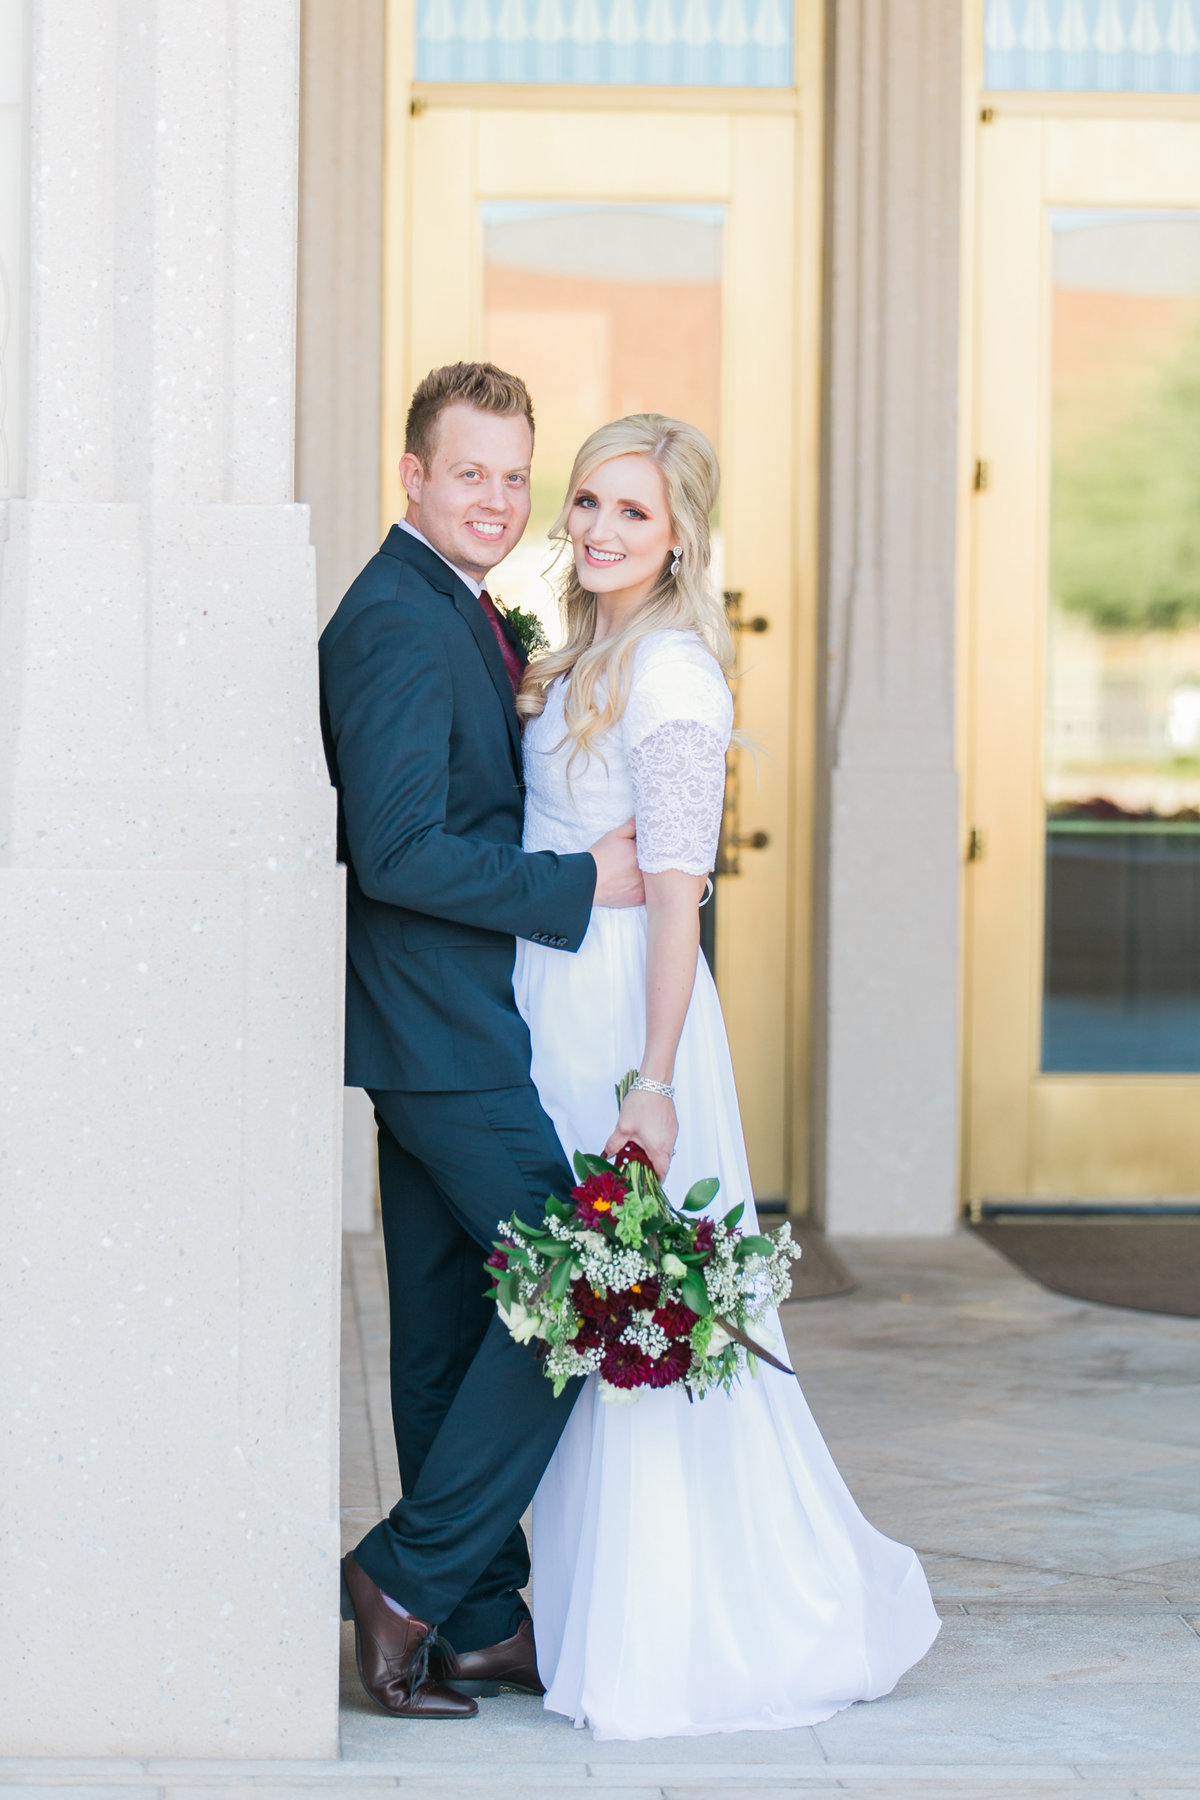 Phoenix-Arizona-LDS Temple- Wedding-Photographer-5